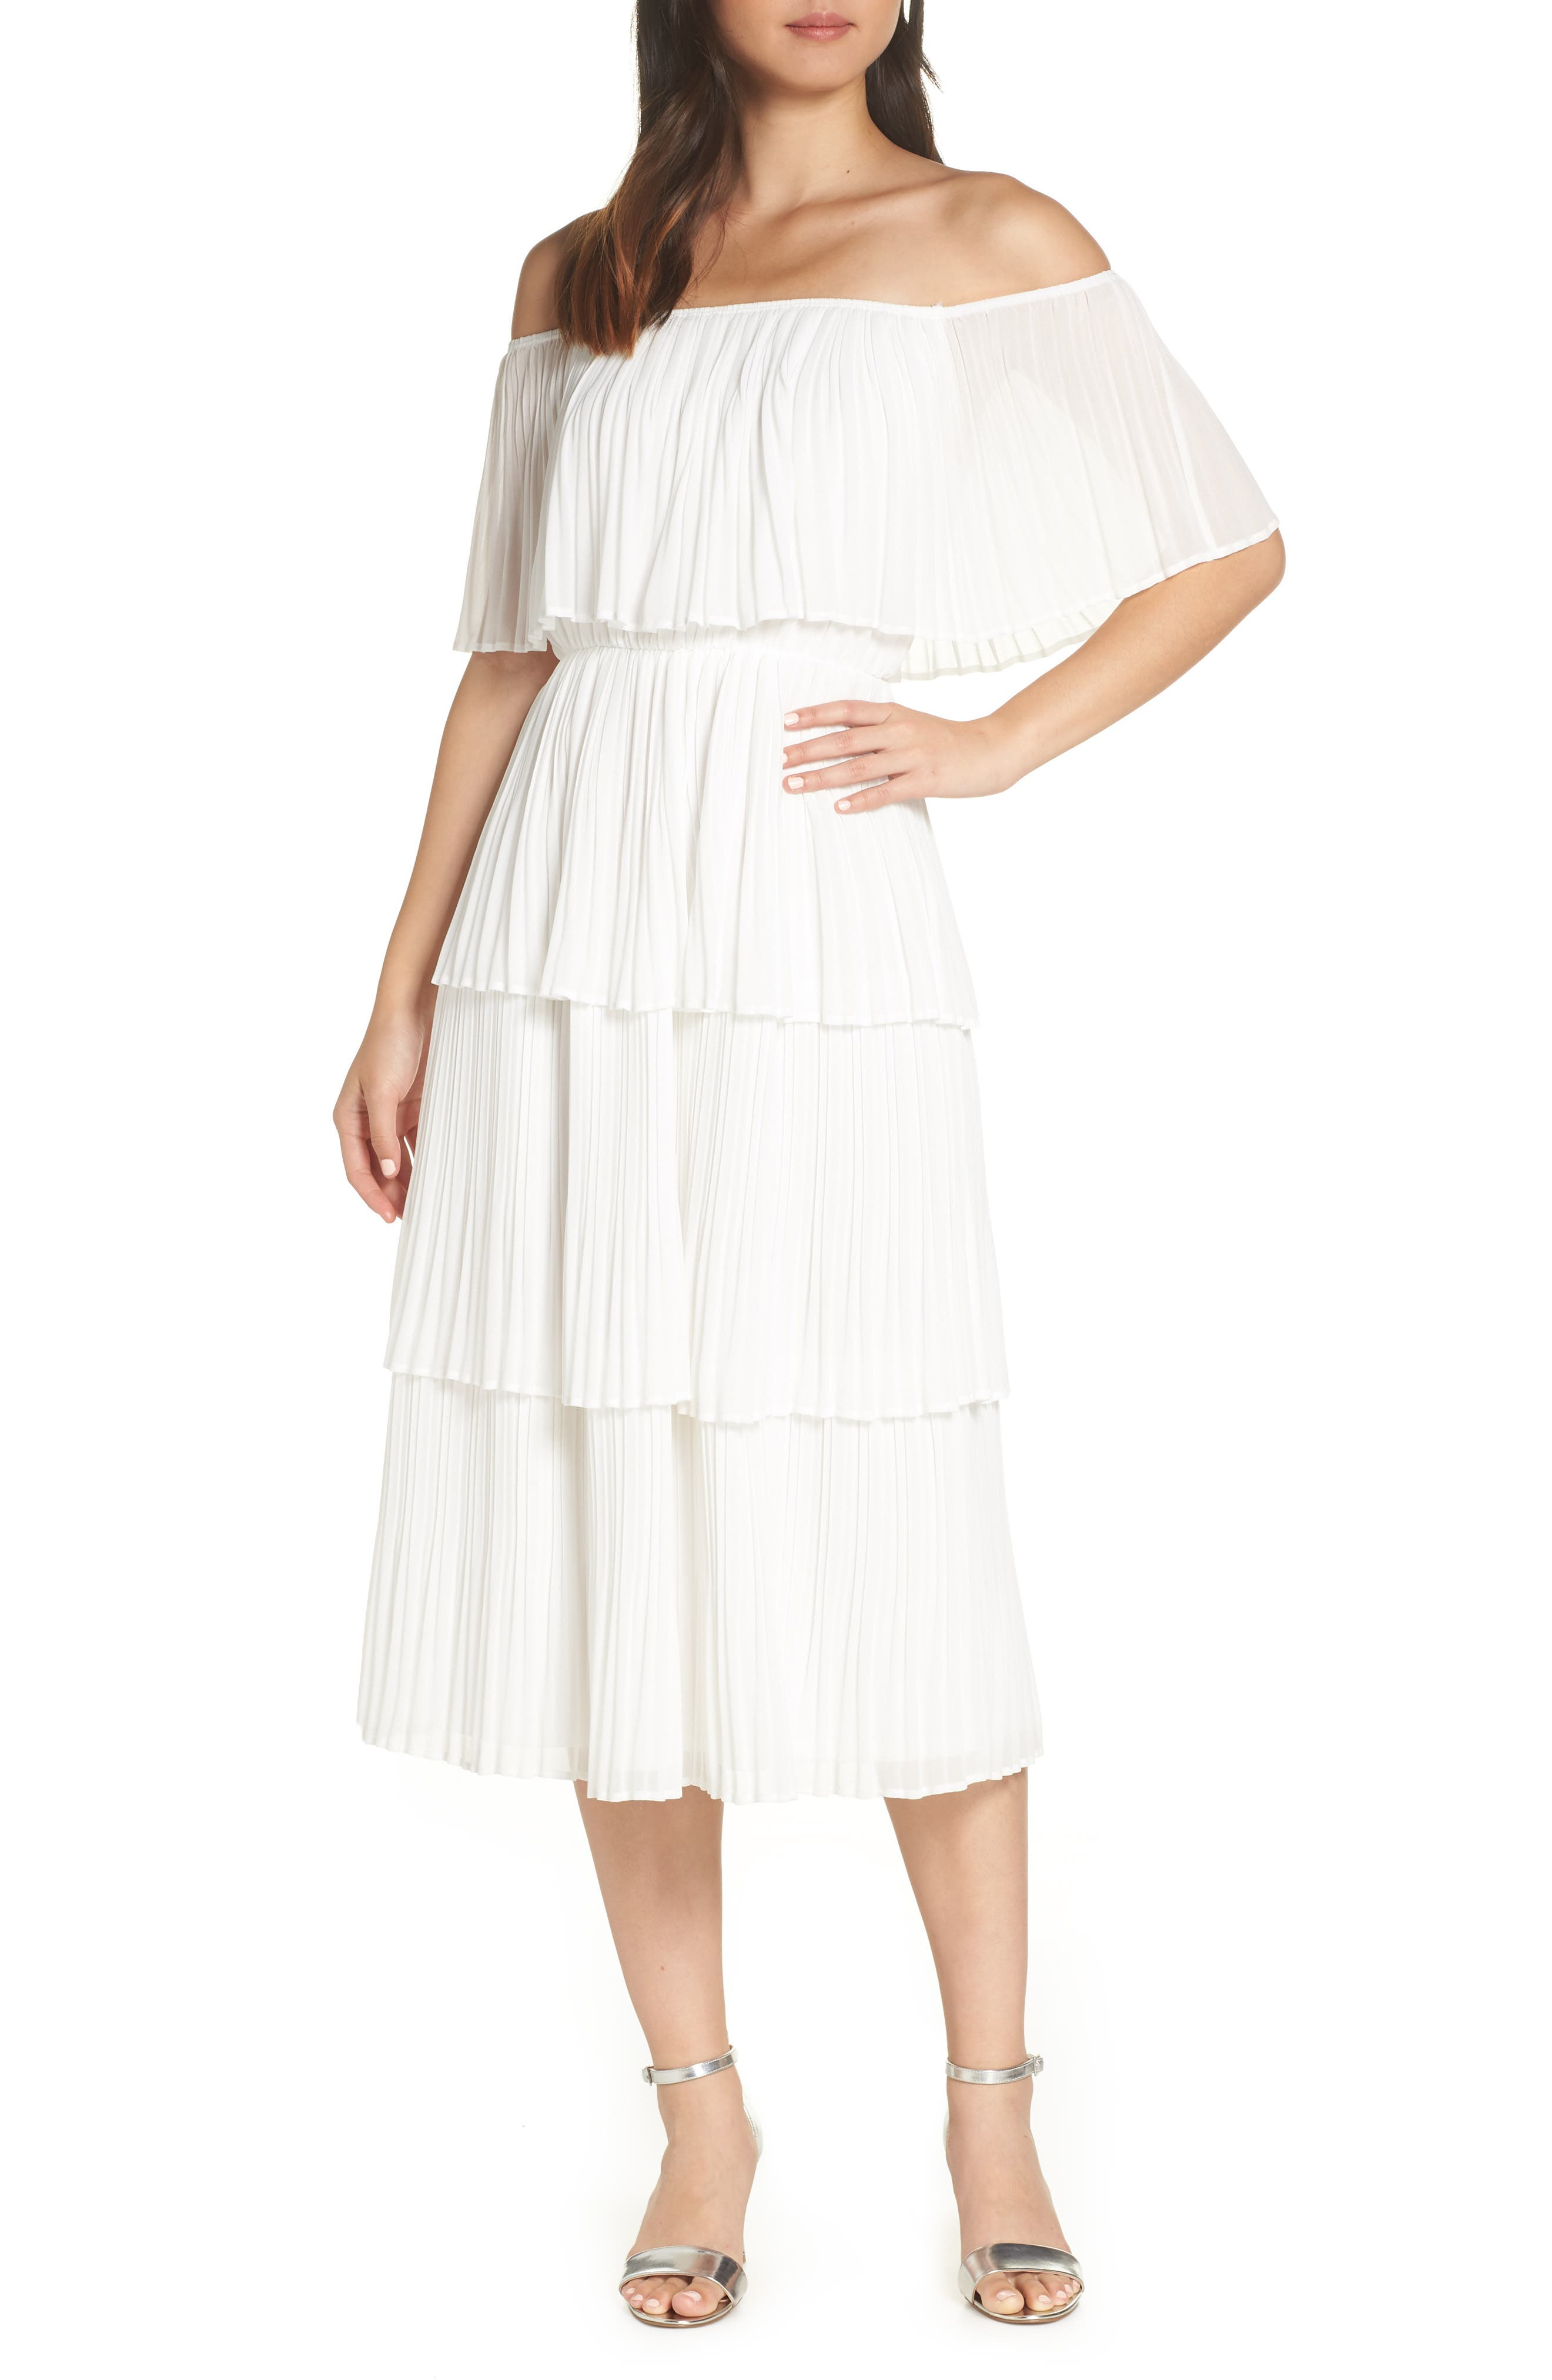 Lulus Gala Ready Off The Shoulder Dress, White